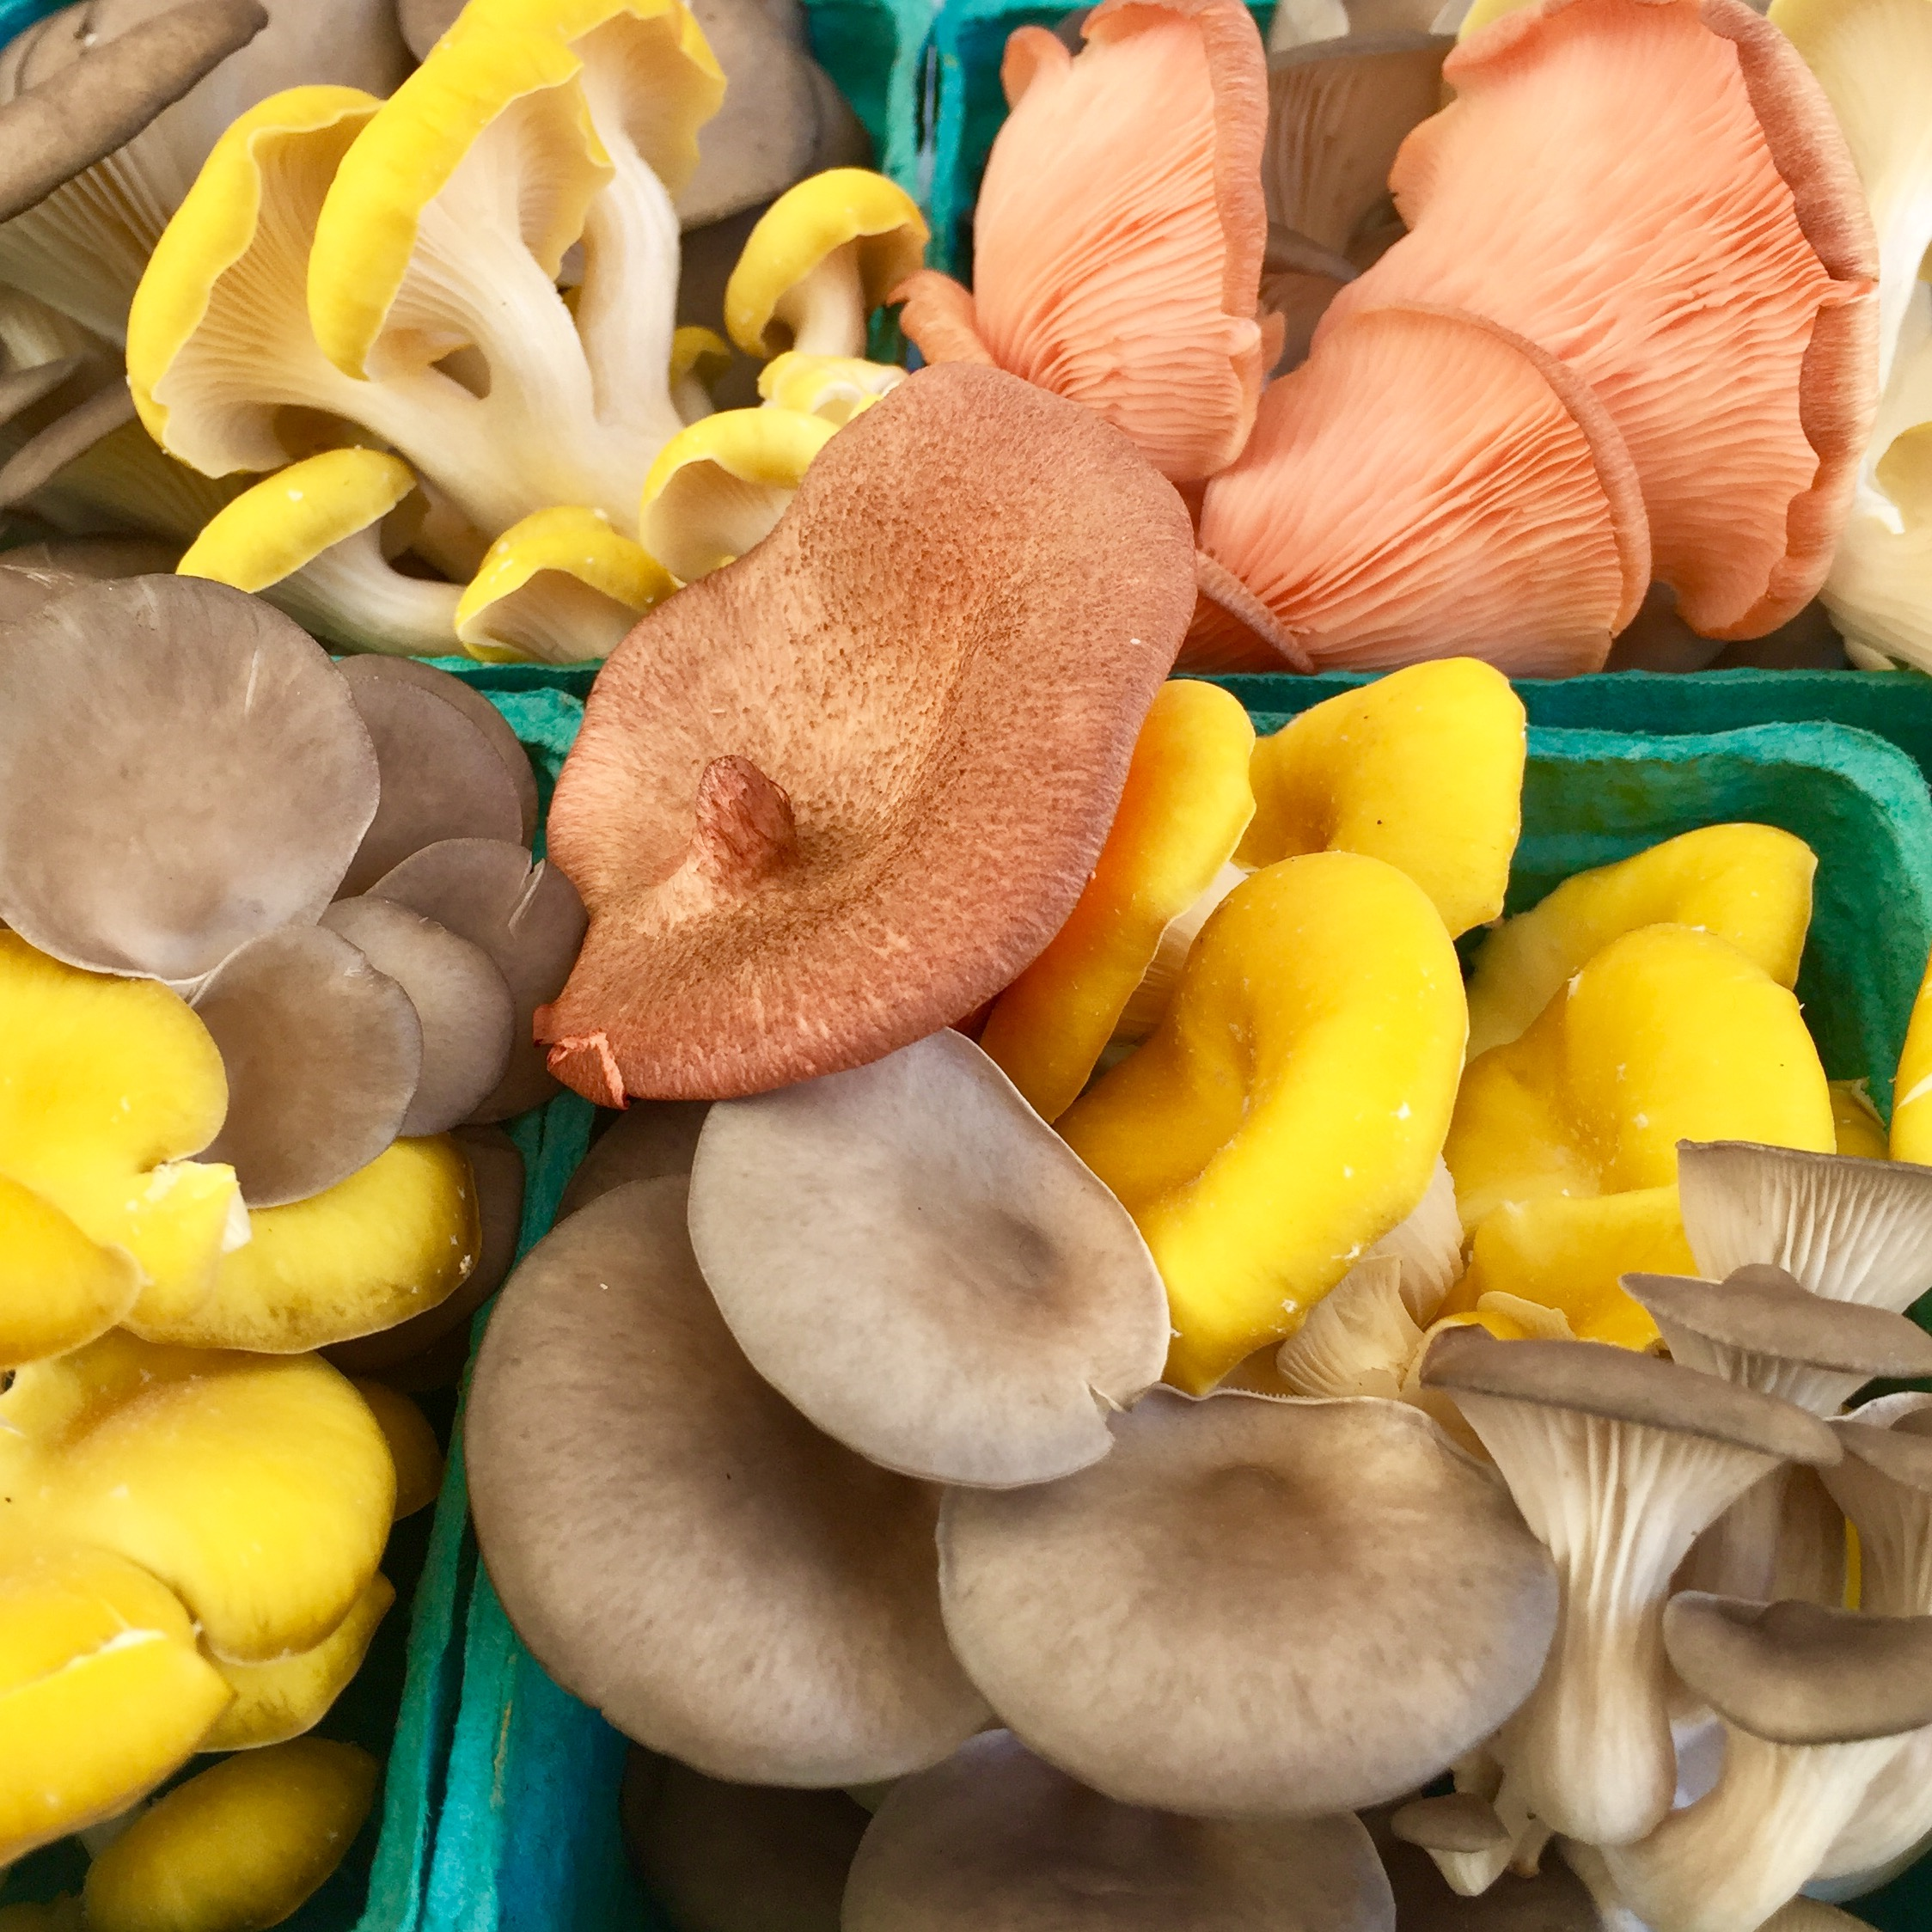 3 Reasons We've Fallen for Foraged Fungi